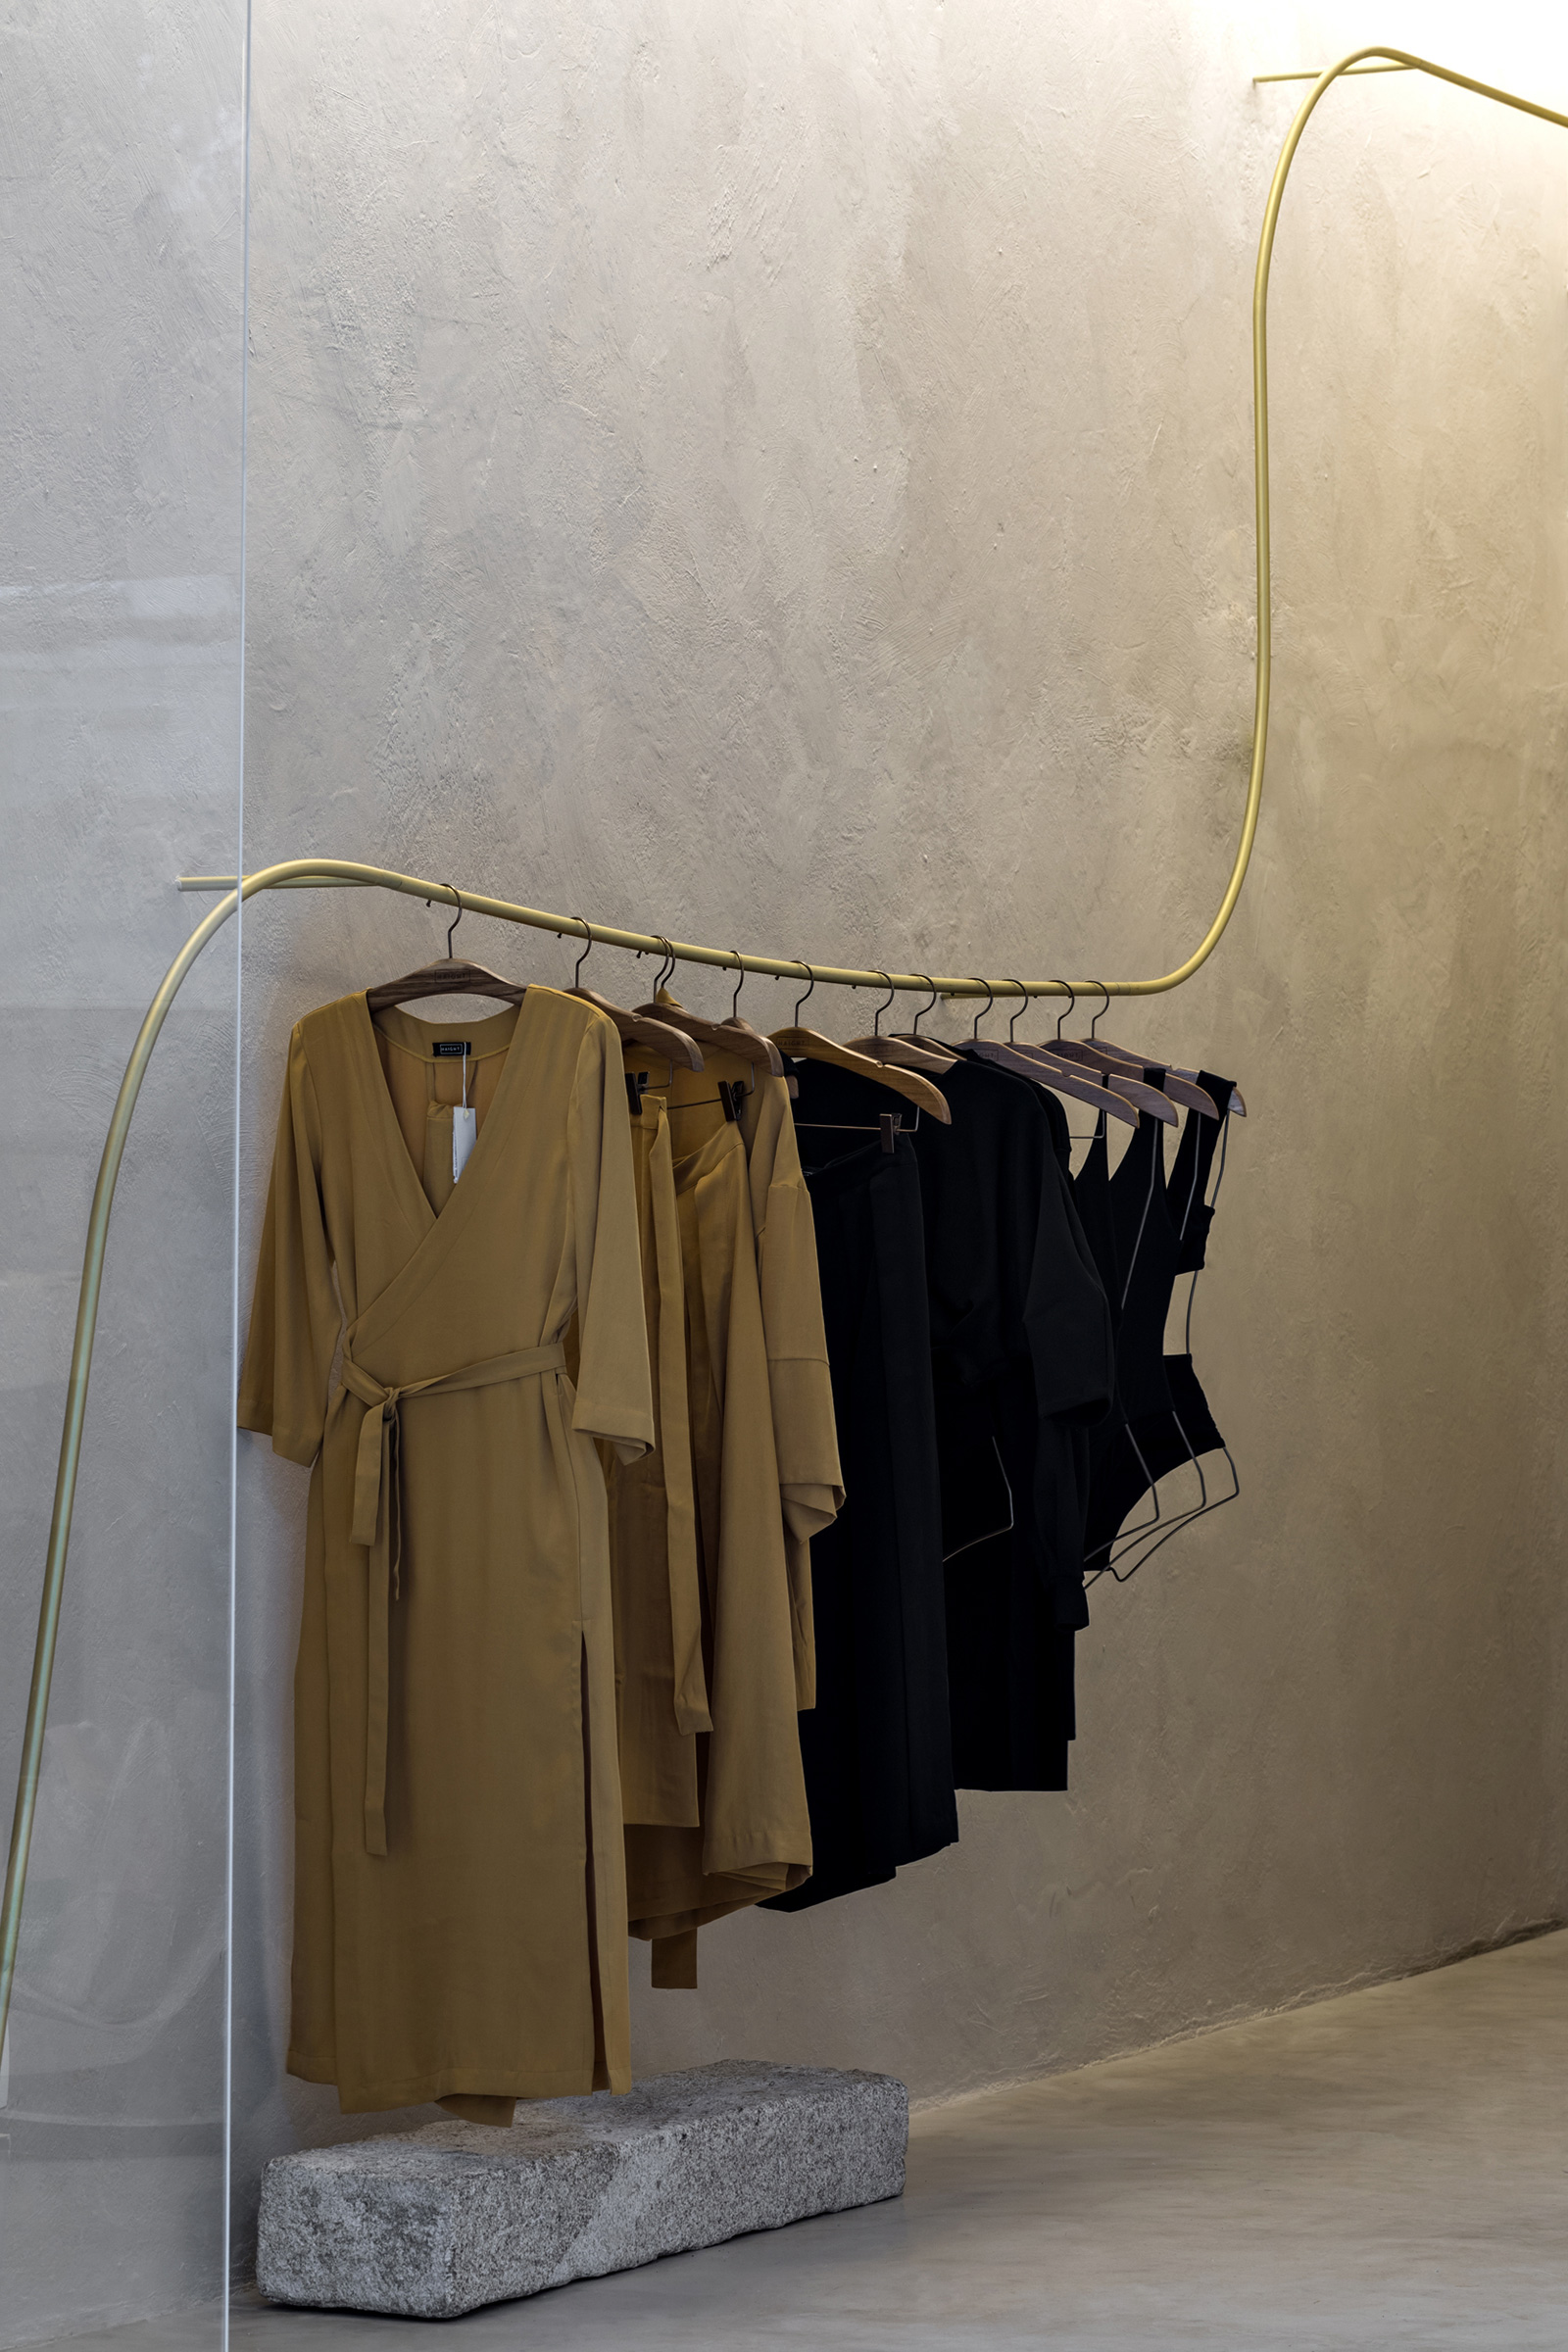 Fluid metal wires run offset the walls to hang the brand's latest clothing | HAIGHT Store | MNMA studio | STIR